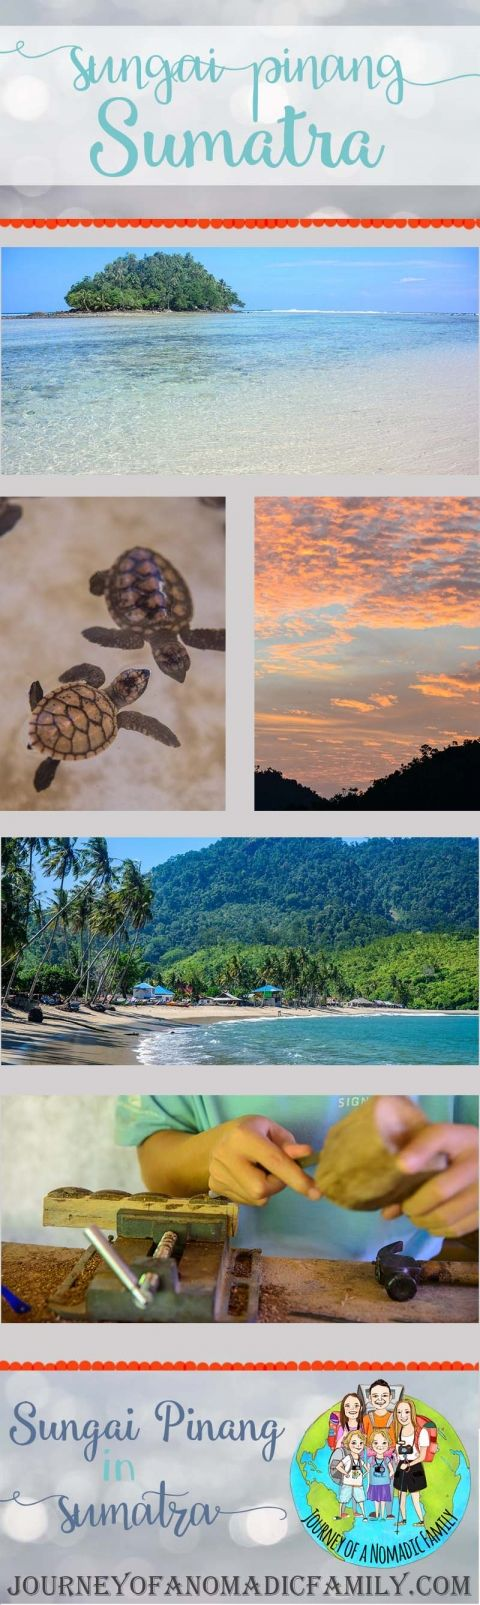 Here are just a few reasons as to why you should visit Sungai Pinang in Western Sumatra